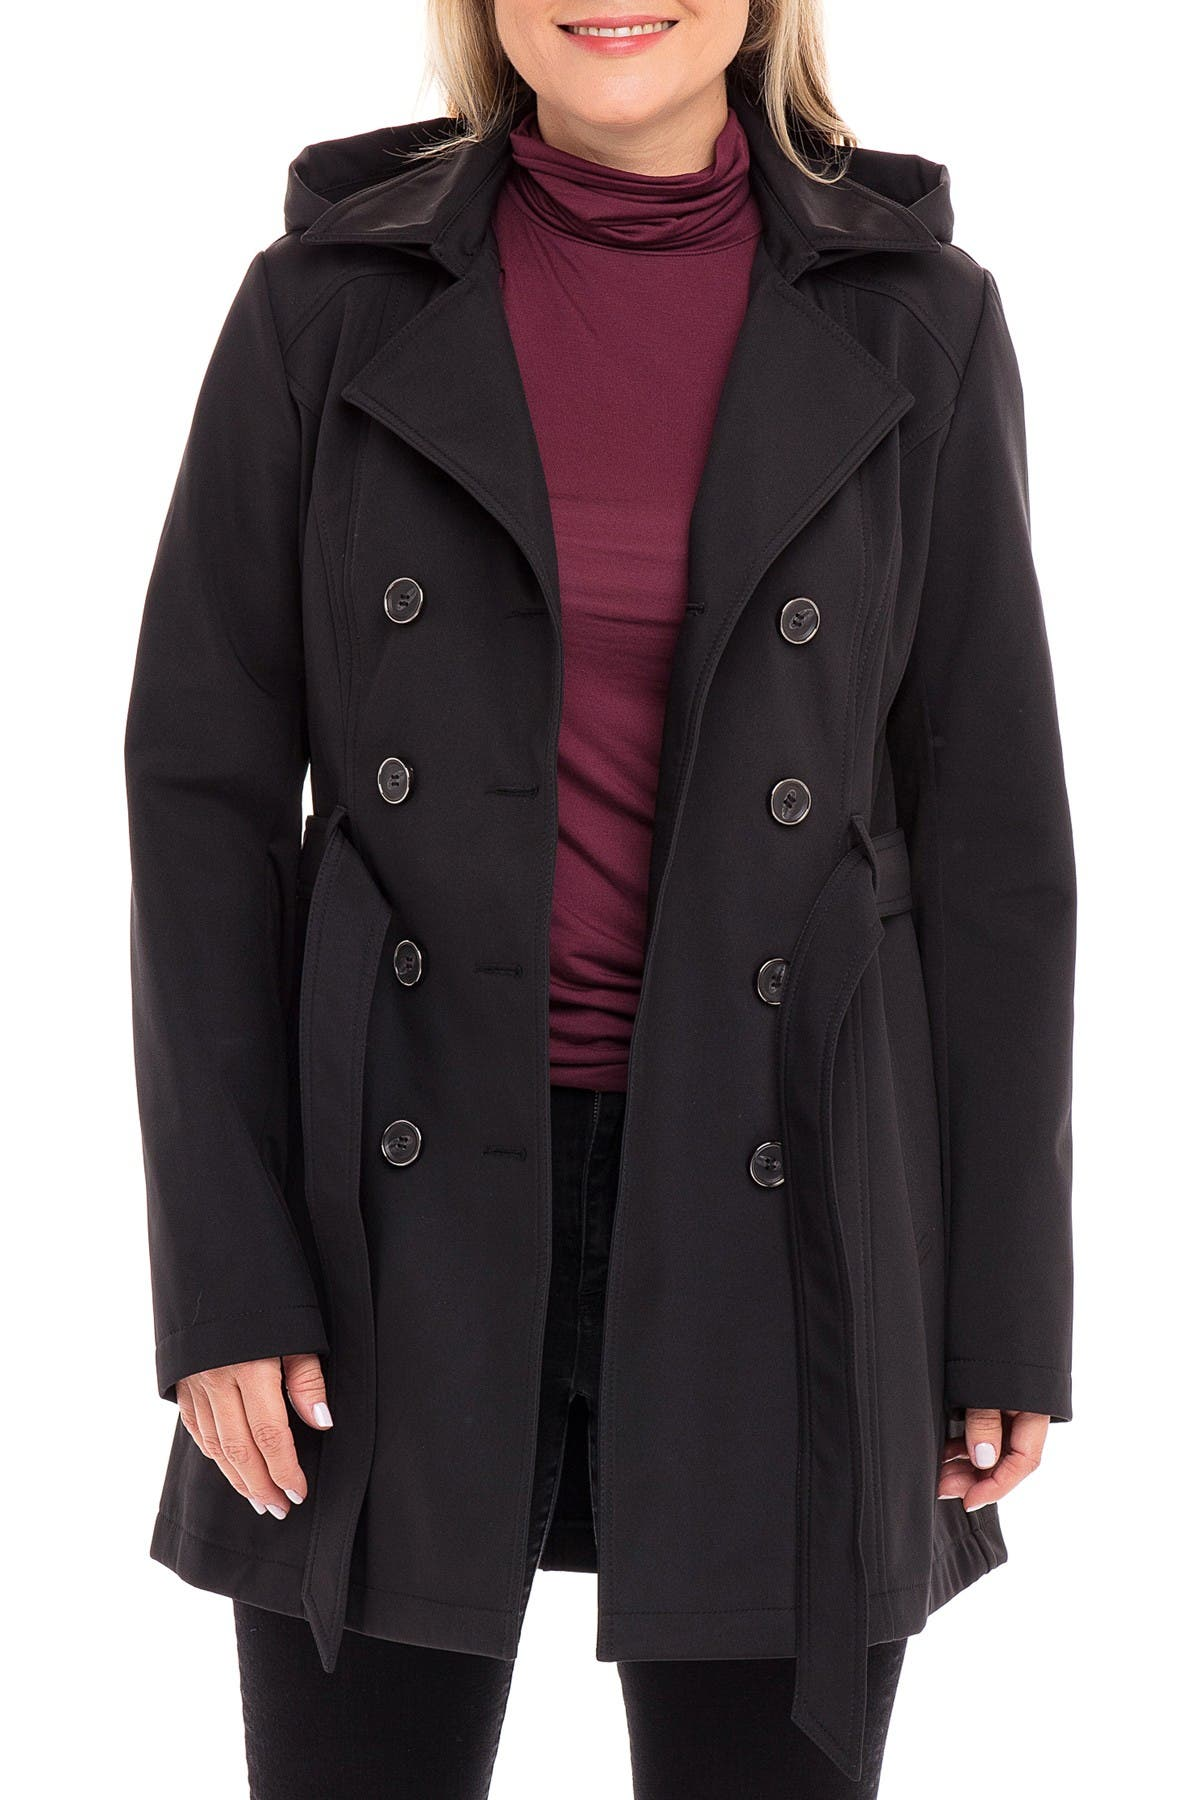 Image of Sebby Belted Soft Shell Trench Coat